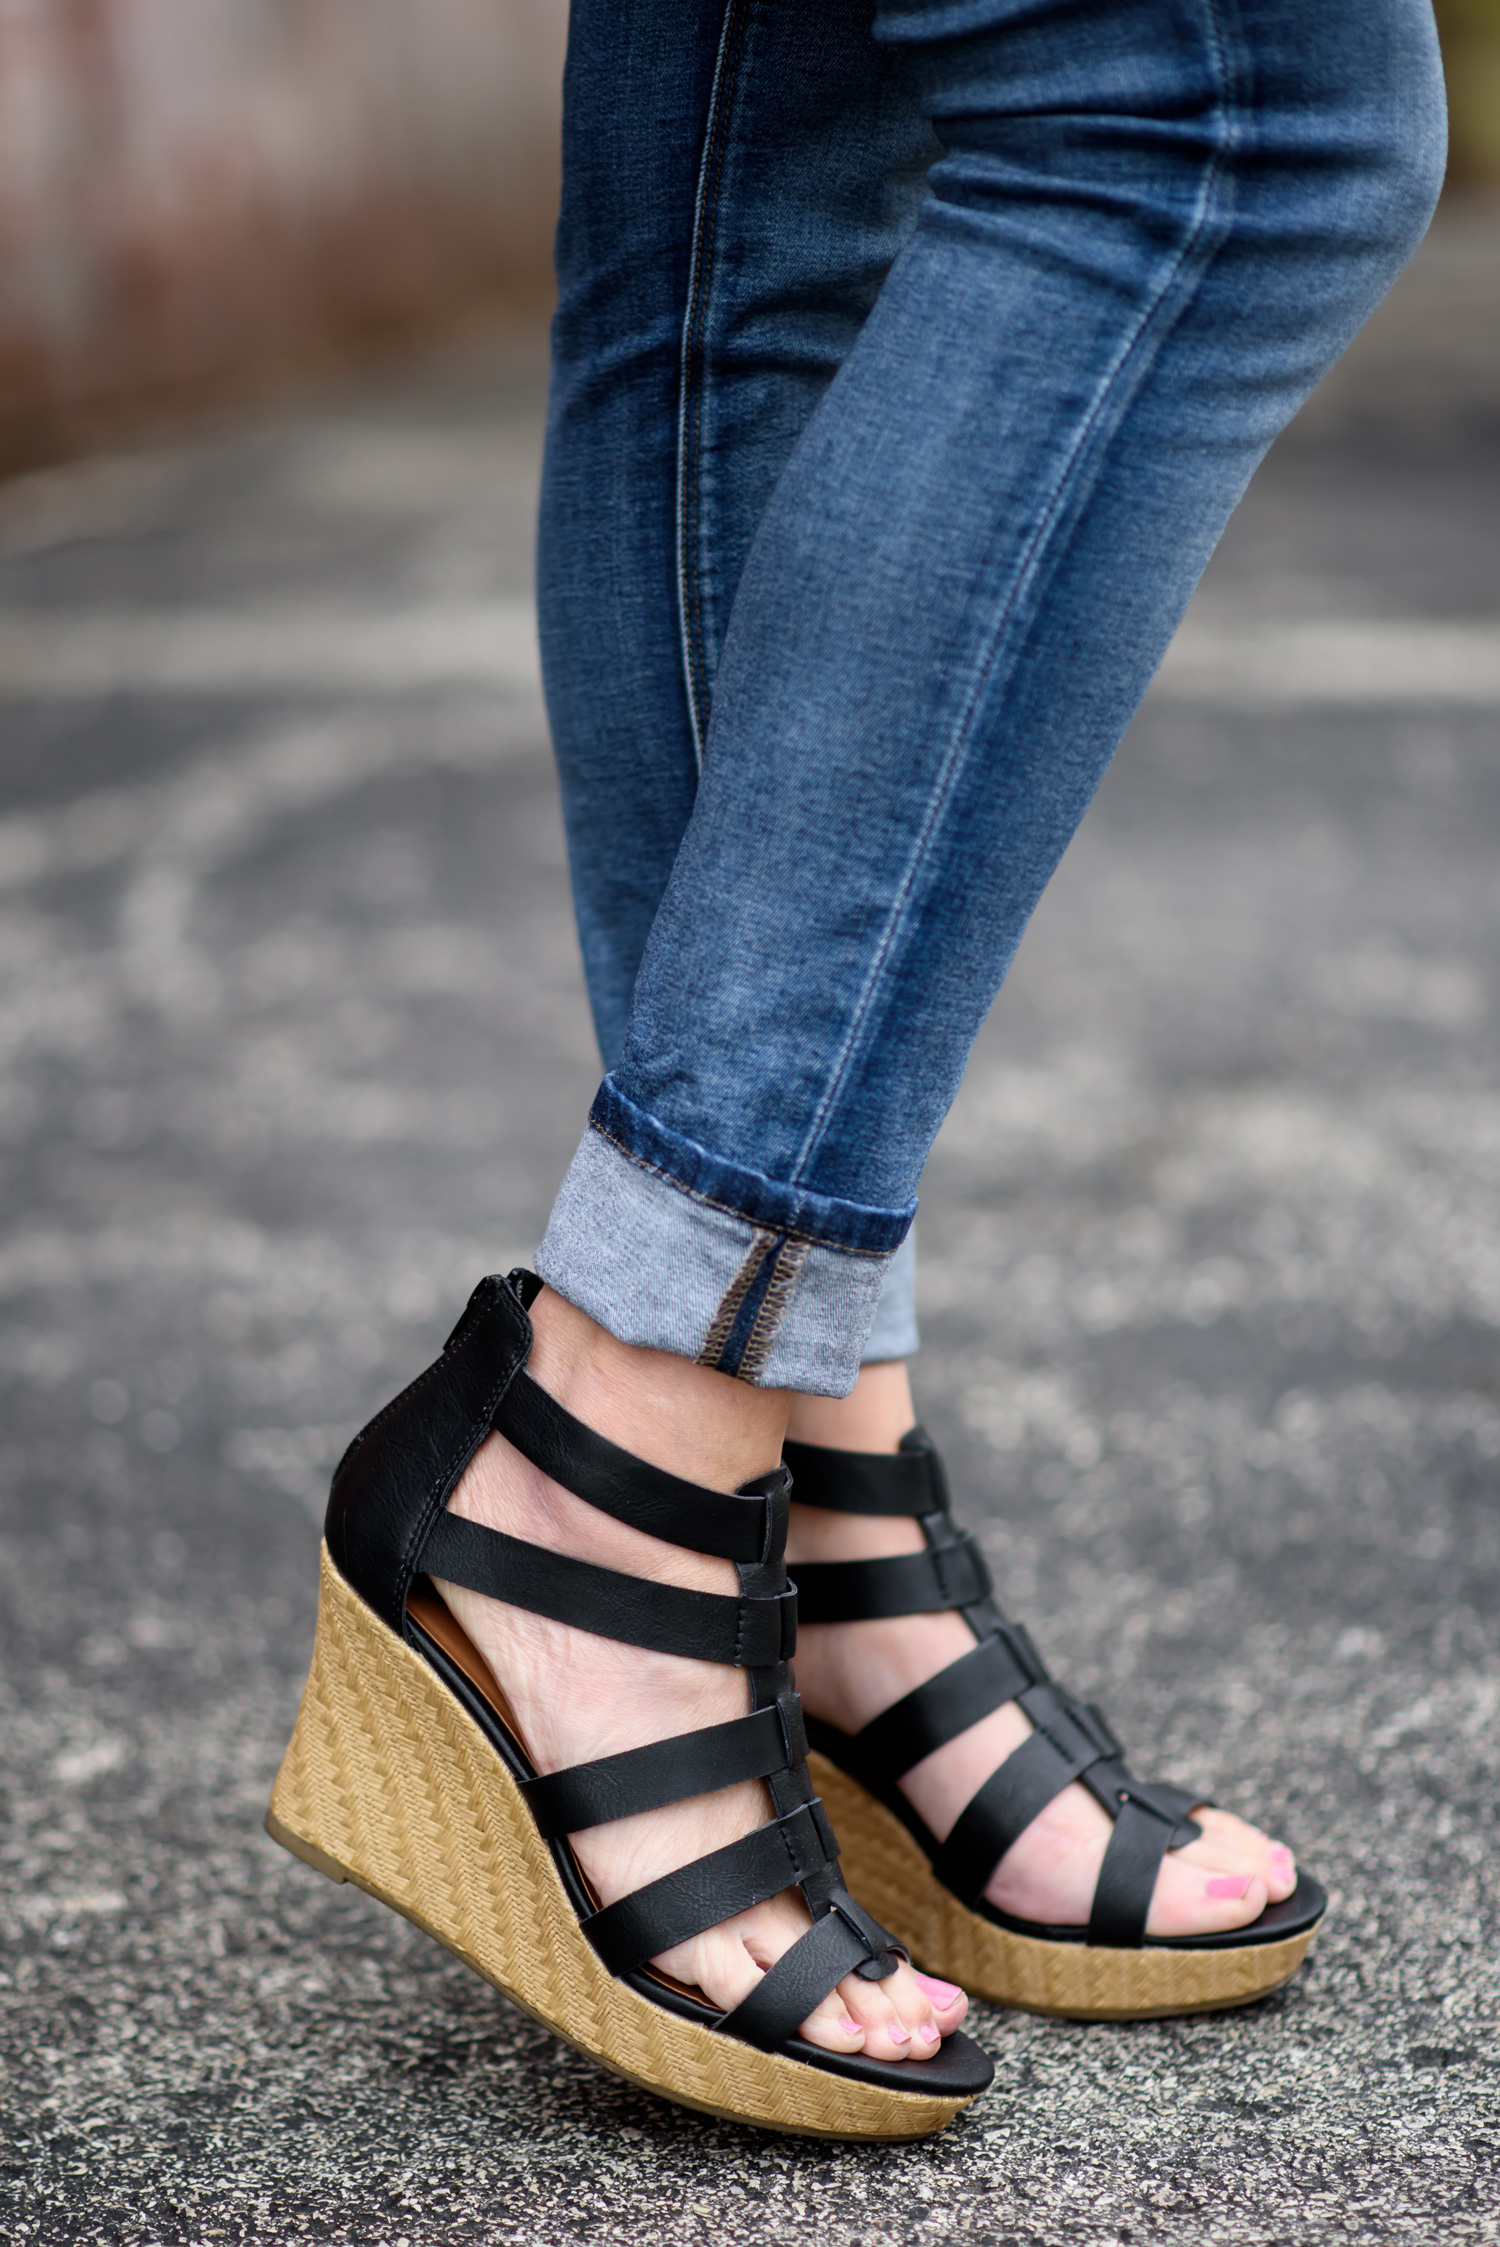 Caged Wedge Sandals Paylessforstyle